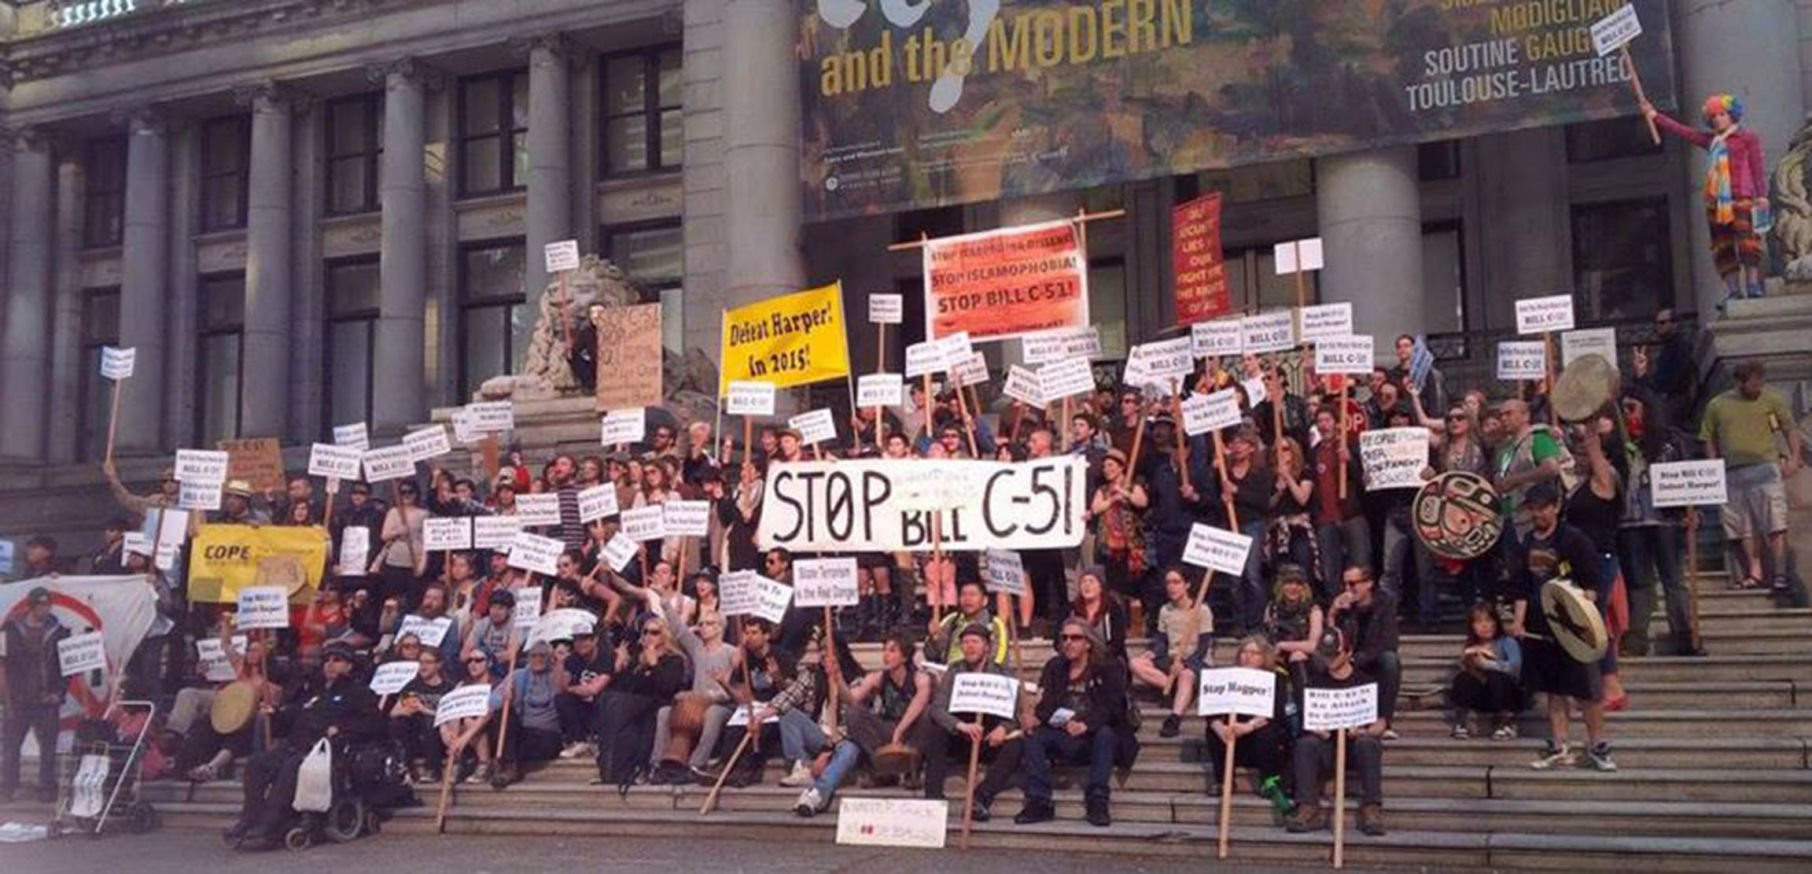 C51 protest in Vancouver